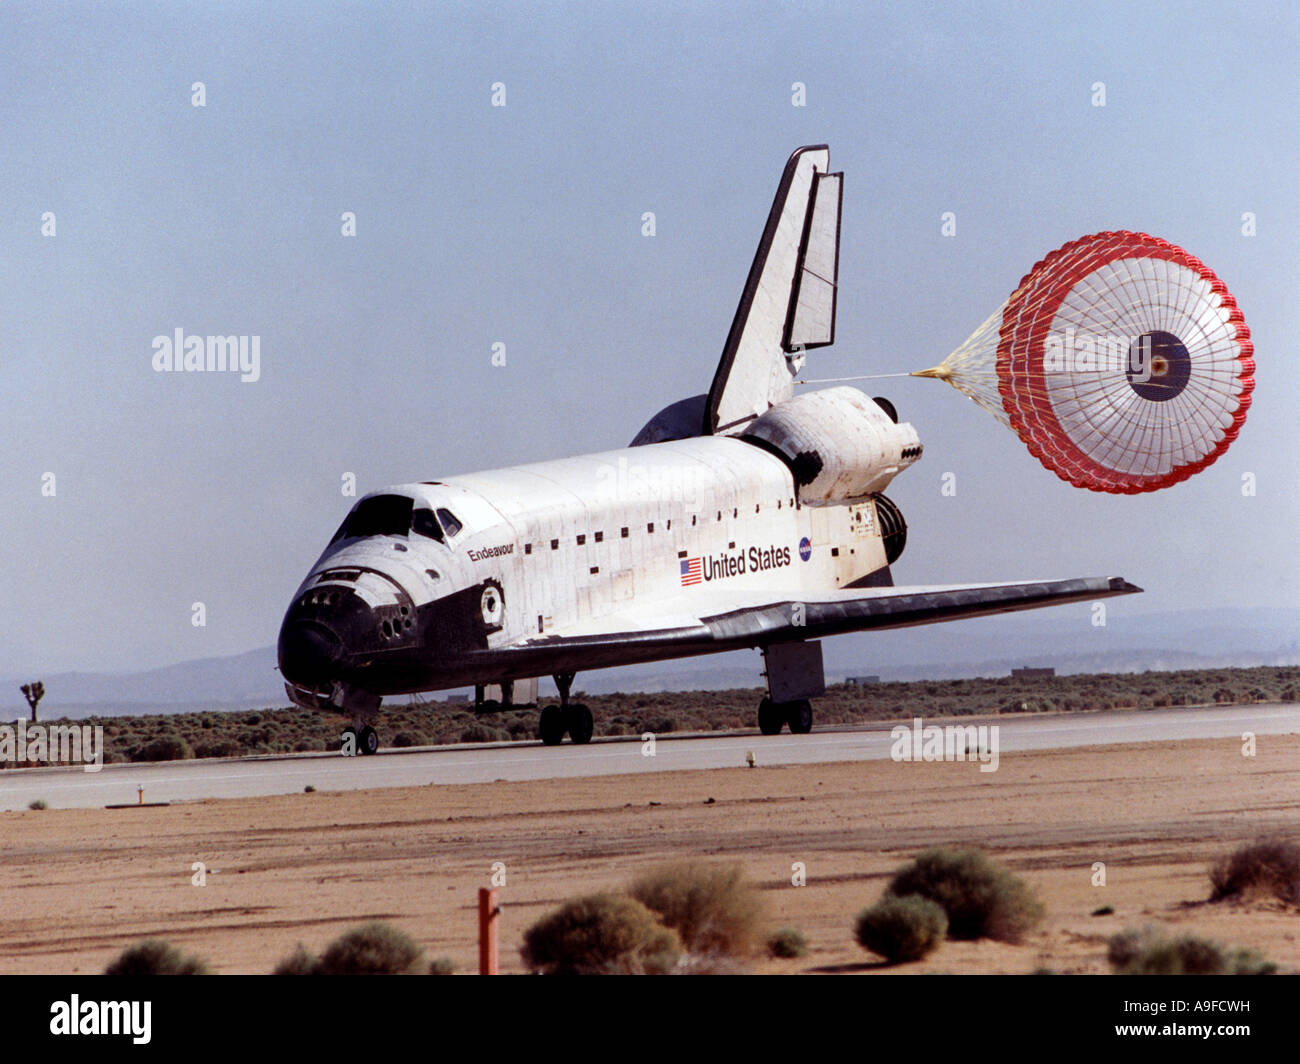 space shuttle landing at edwards air force base - photo #21